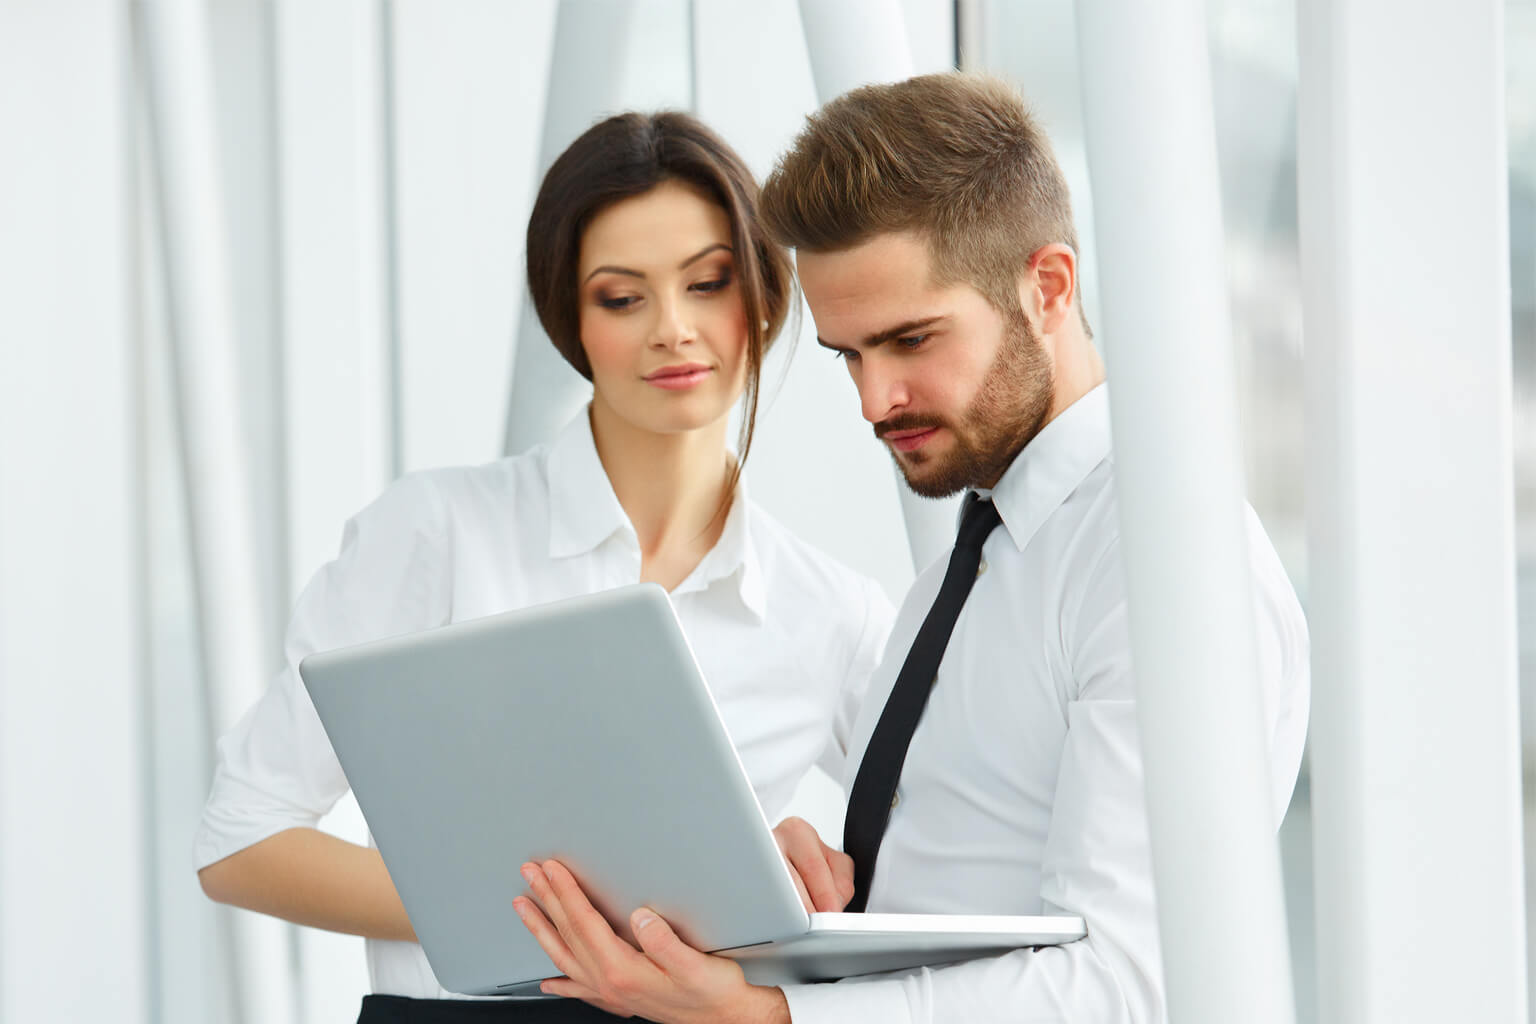 Man and woman discussing business